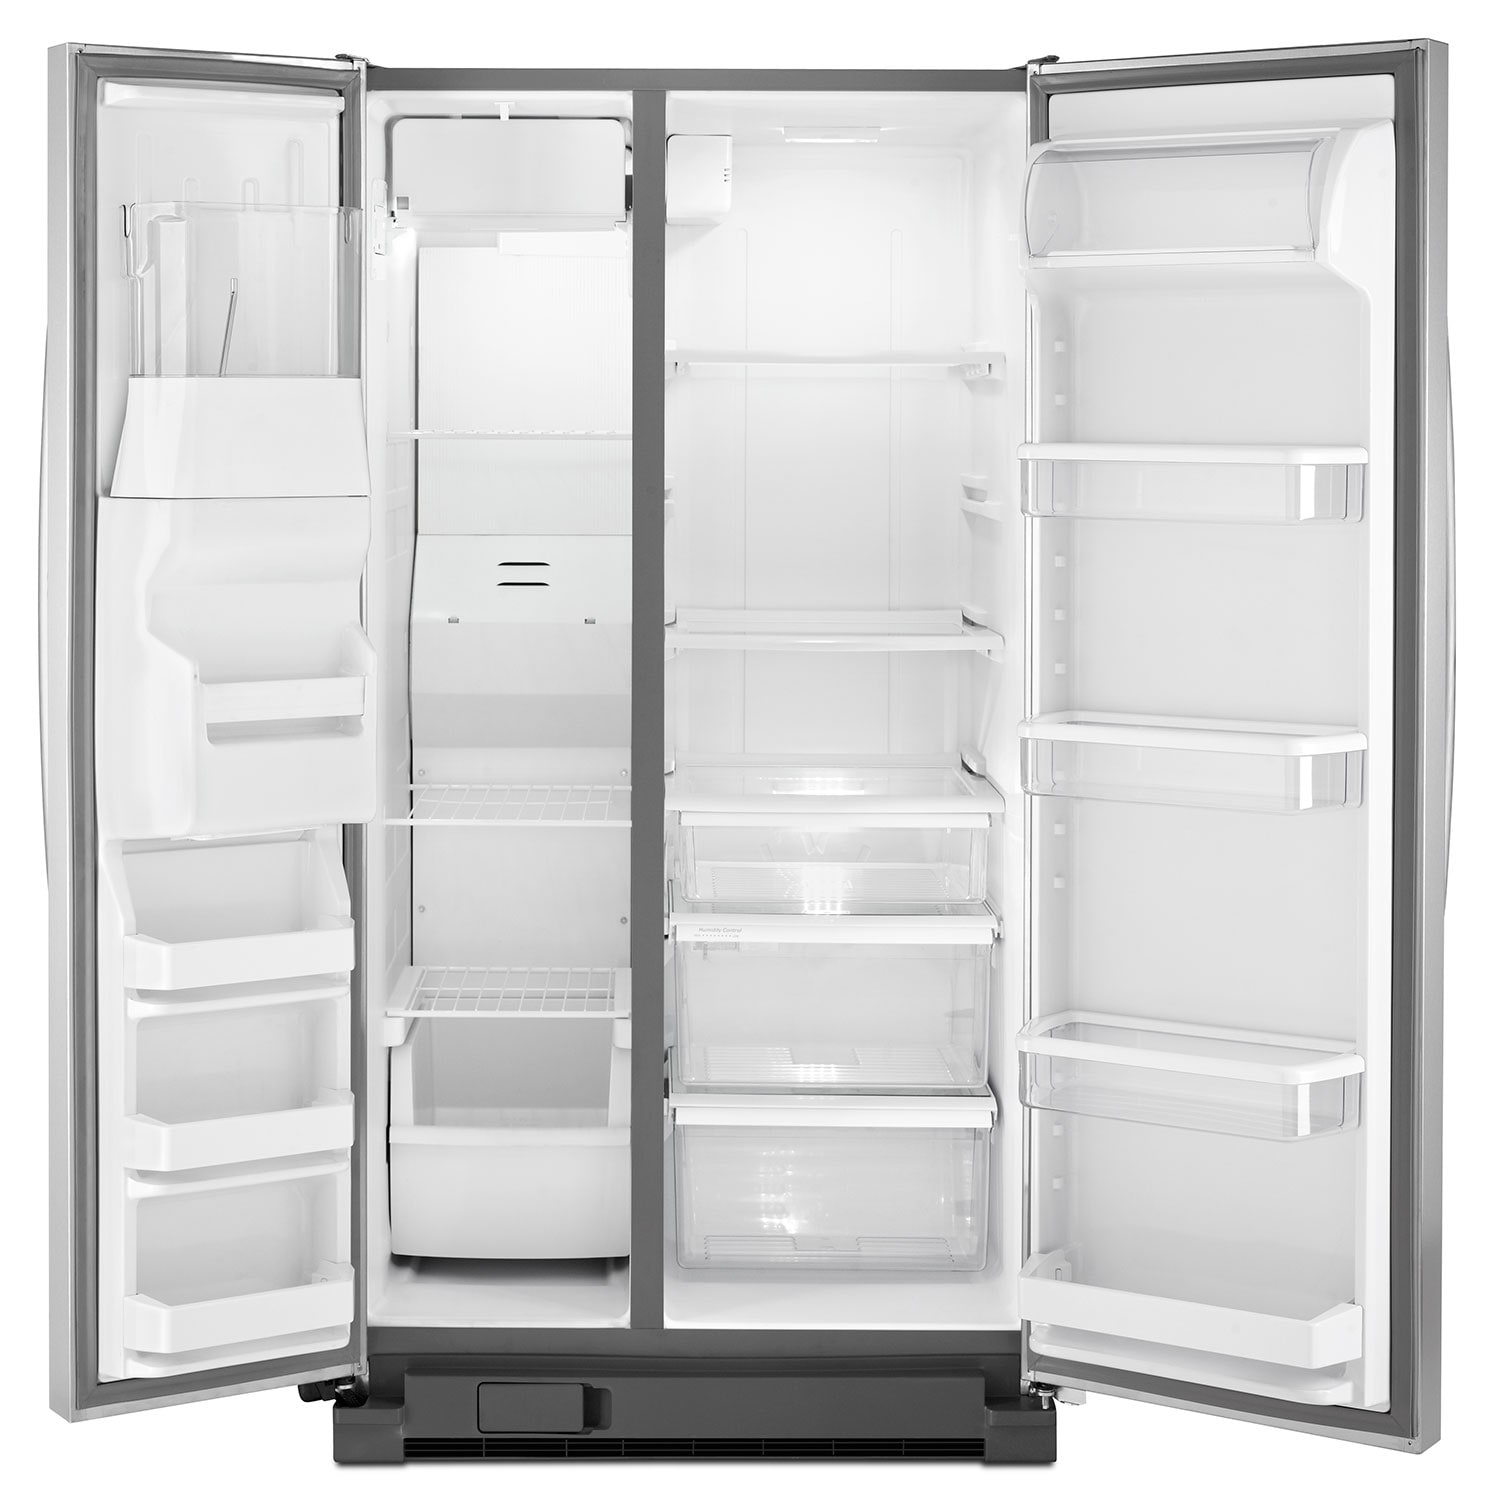 whirlpool stainless steel side by side refrigerator 21 3 cu ft wrs342fiam leon 39 s. Black Bedroom Furniture Sets. Home Design Ideas